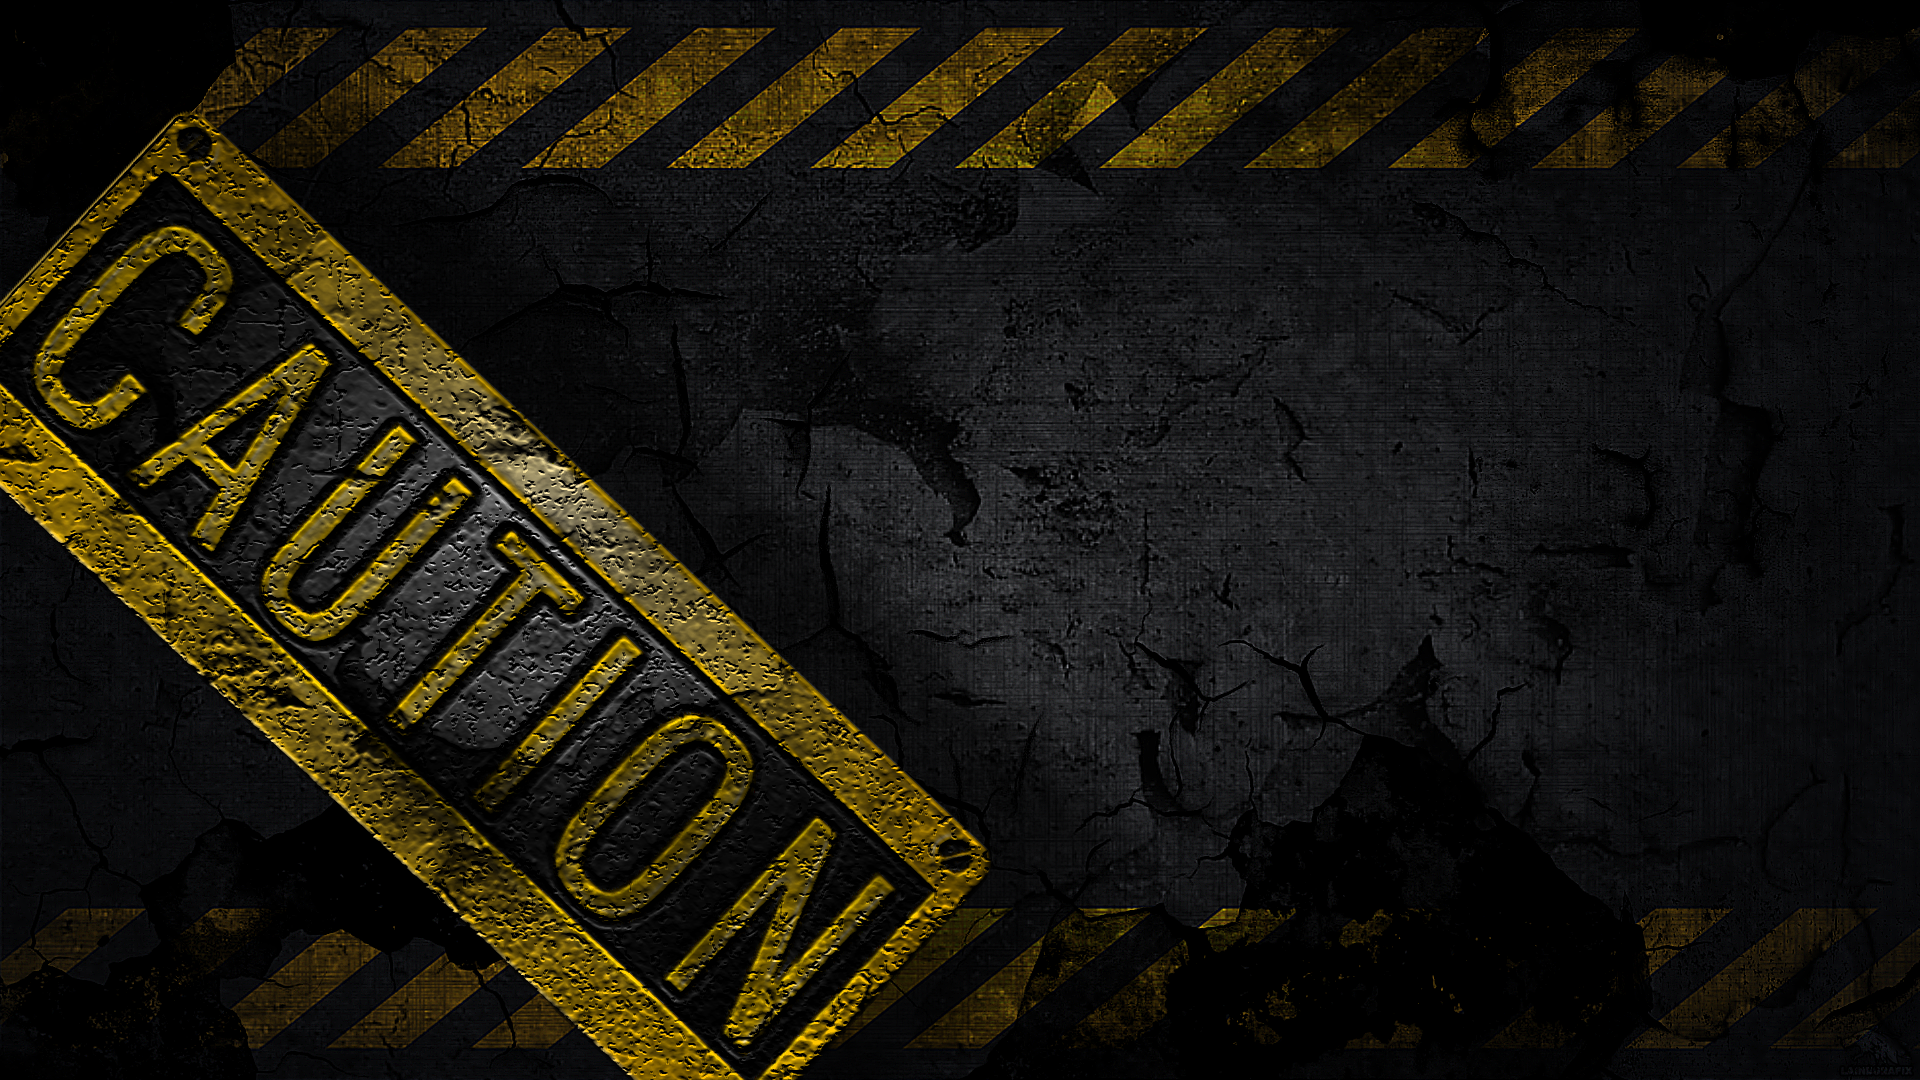 Caution Pictures | Resolution: 1920x1080 px, Jan Swint